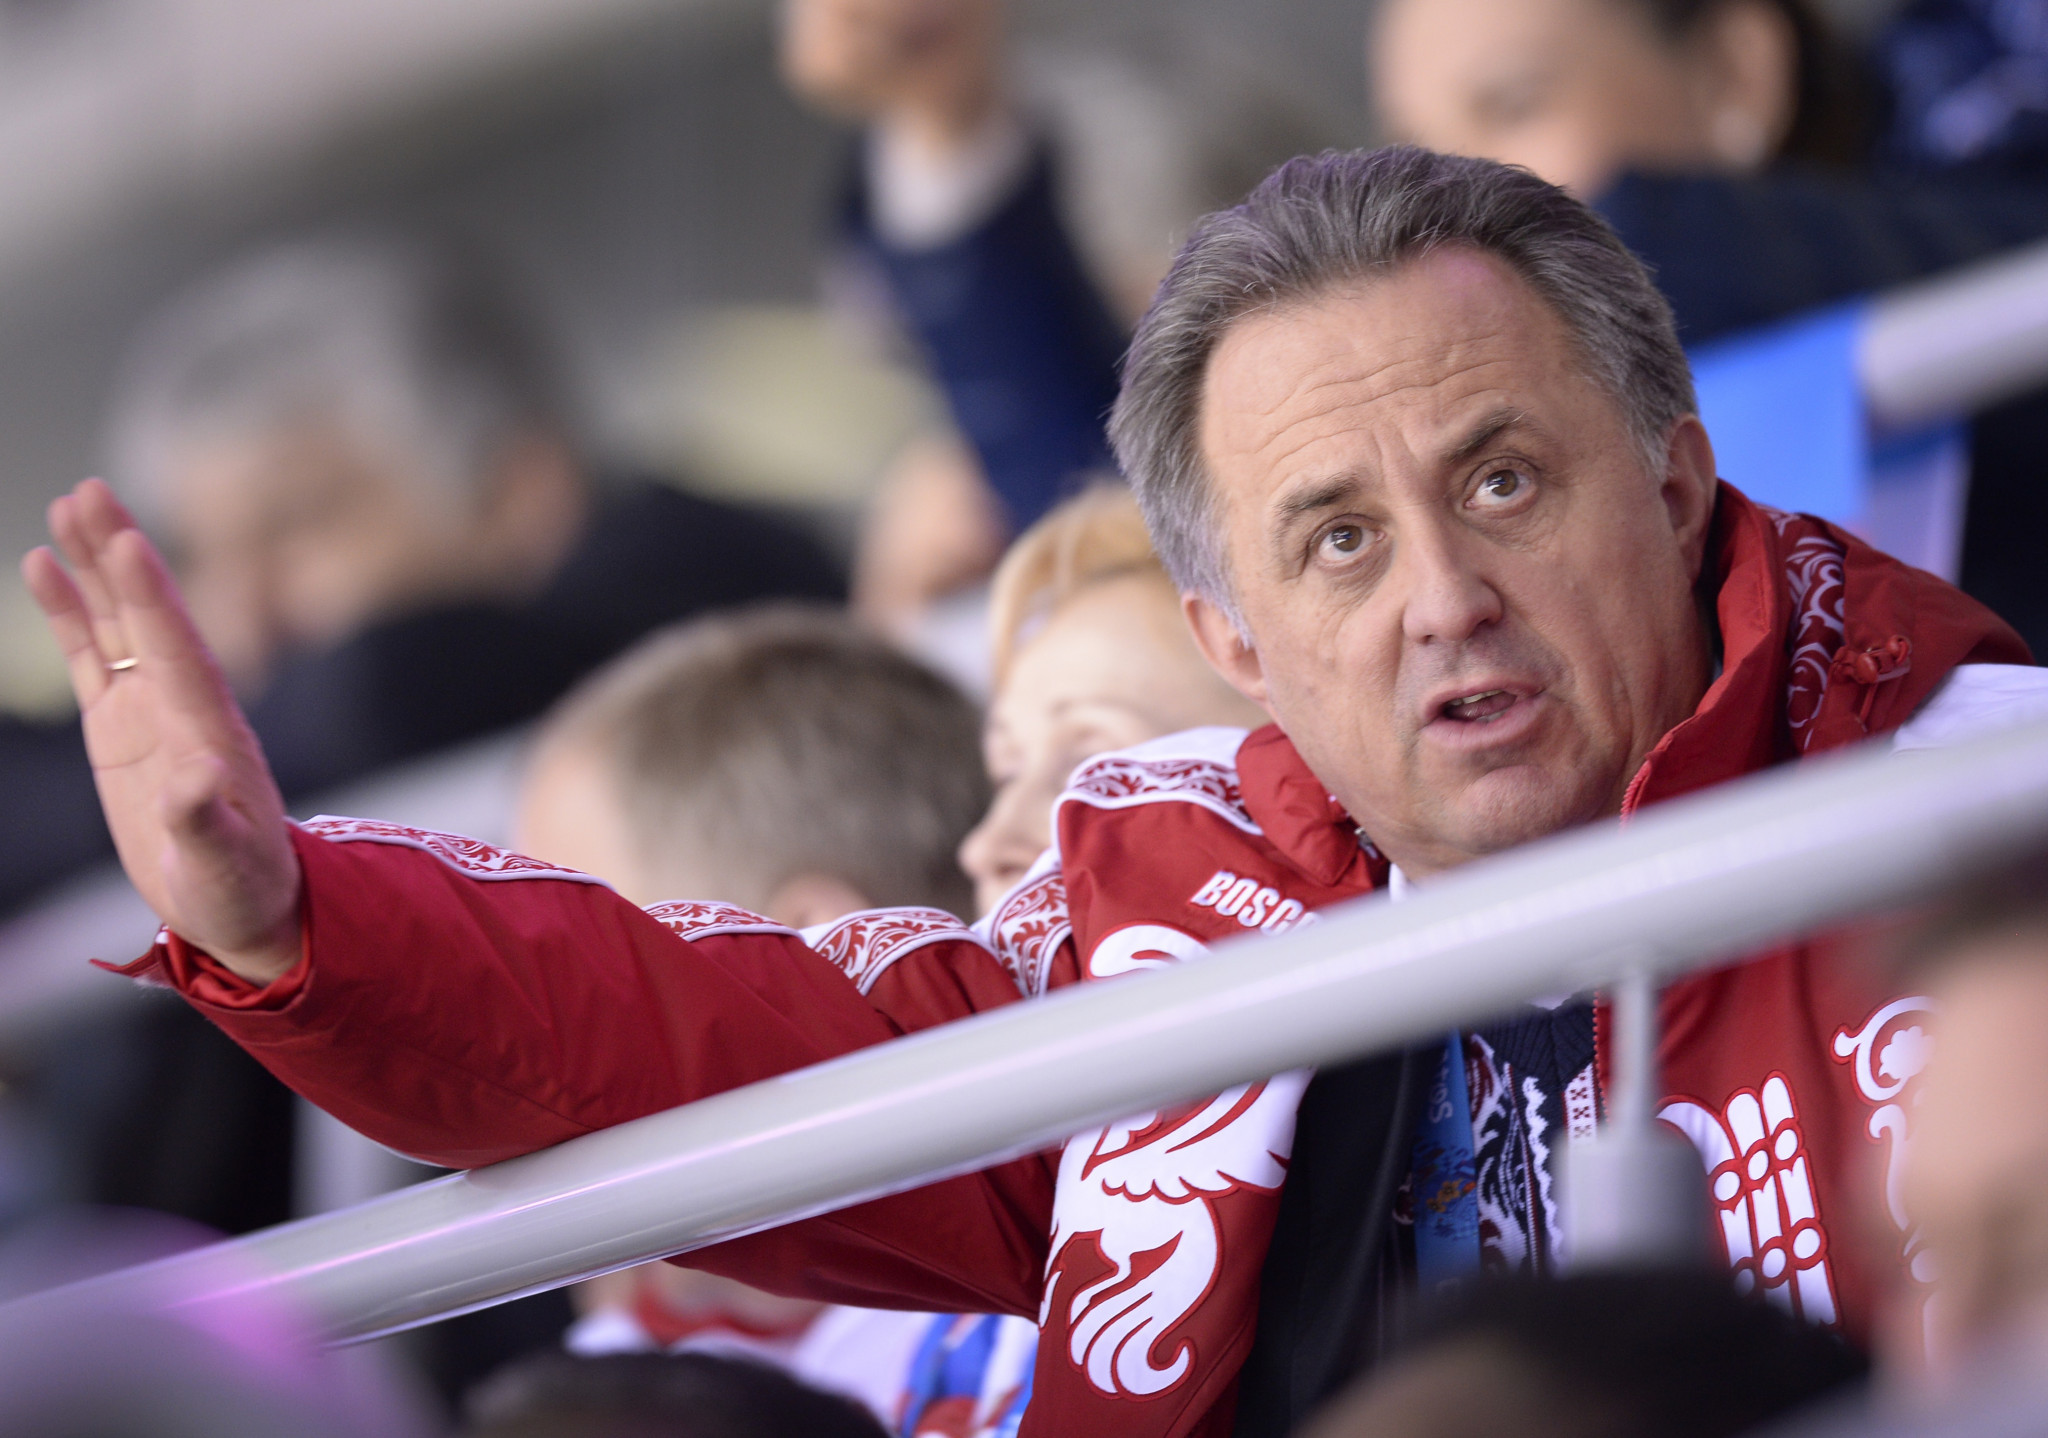 Mutko claims Russia will only pay $15 million fine to IOC if they promise to take no further action